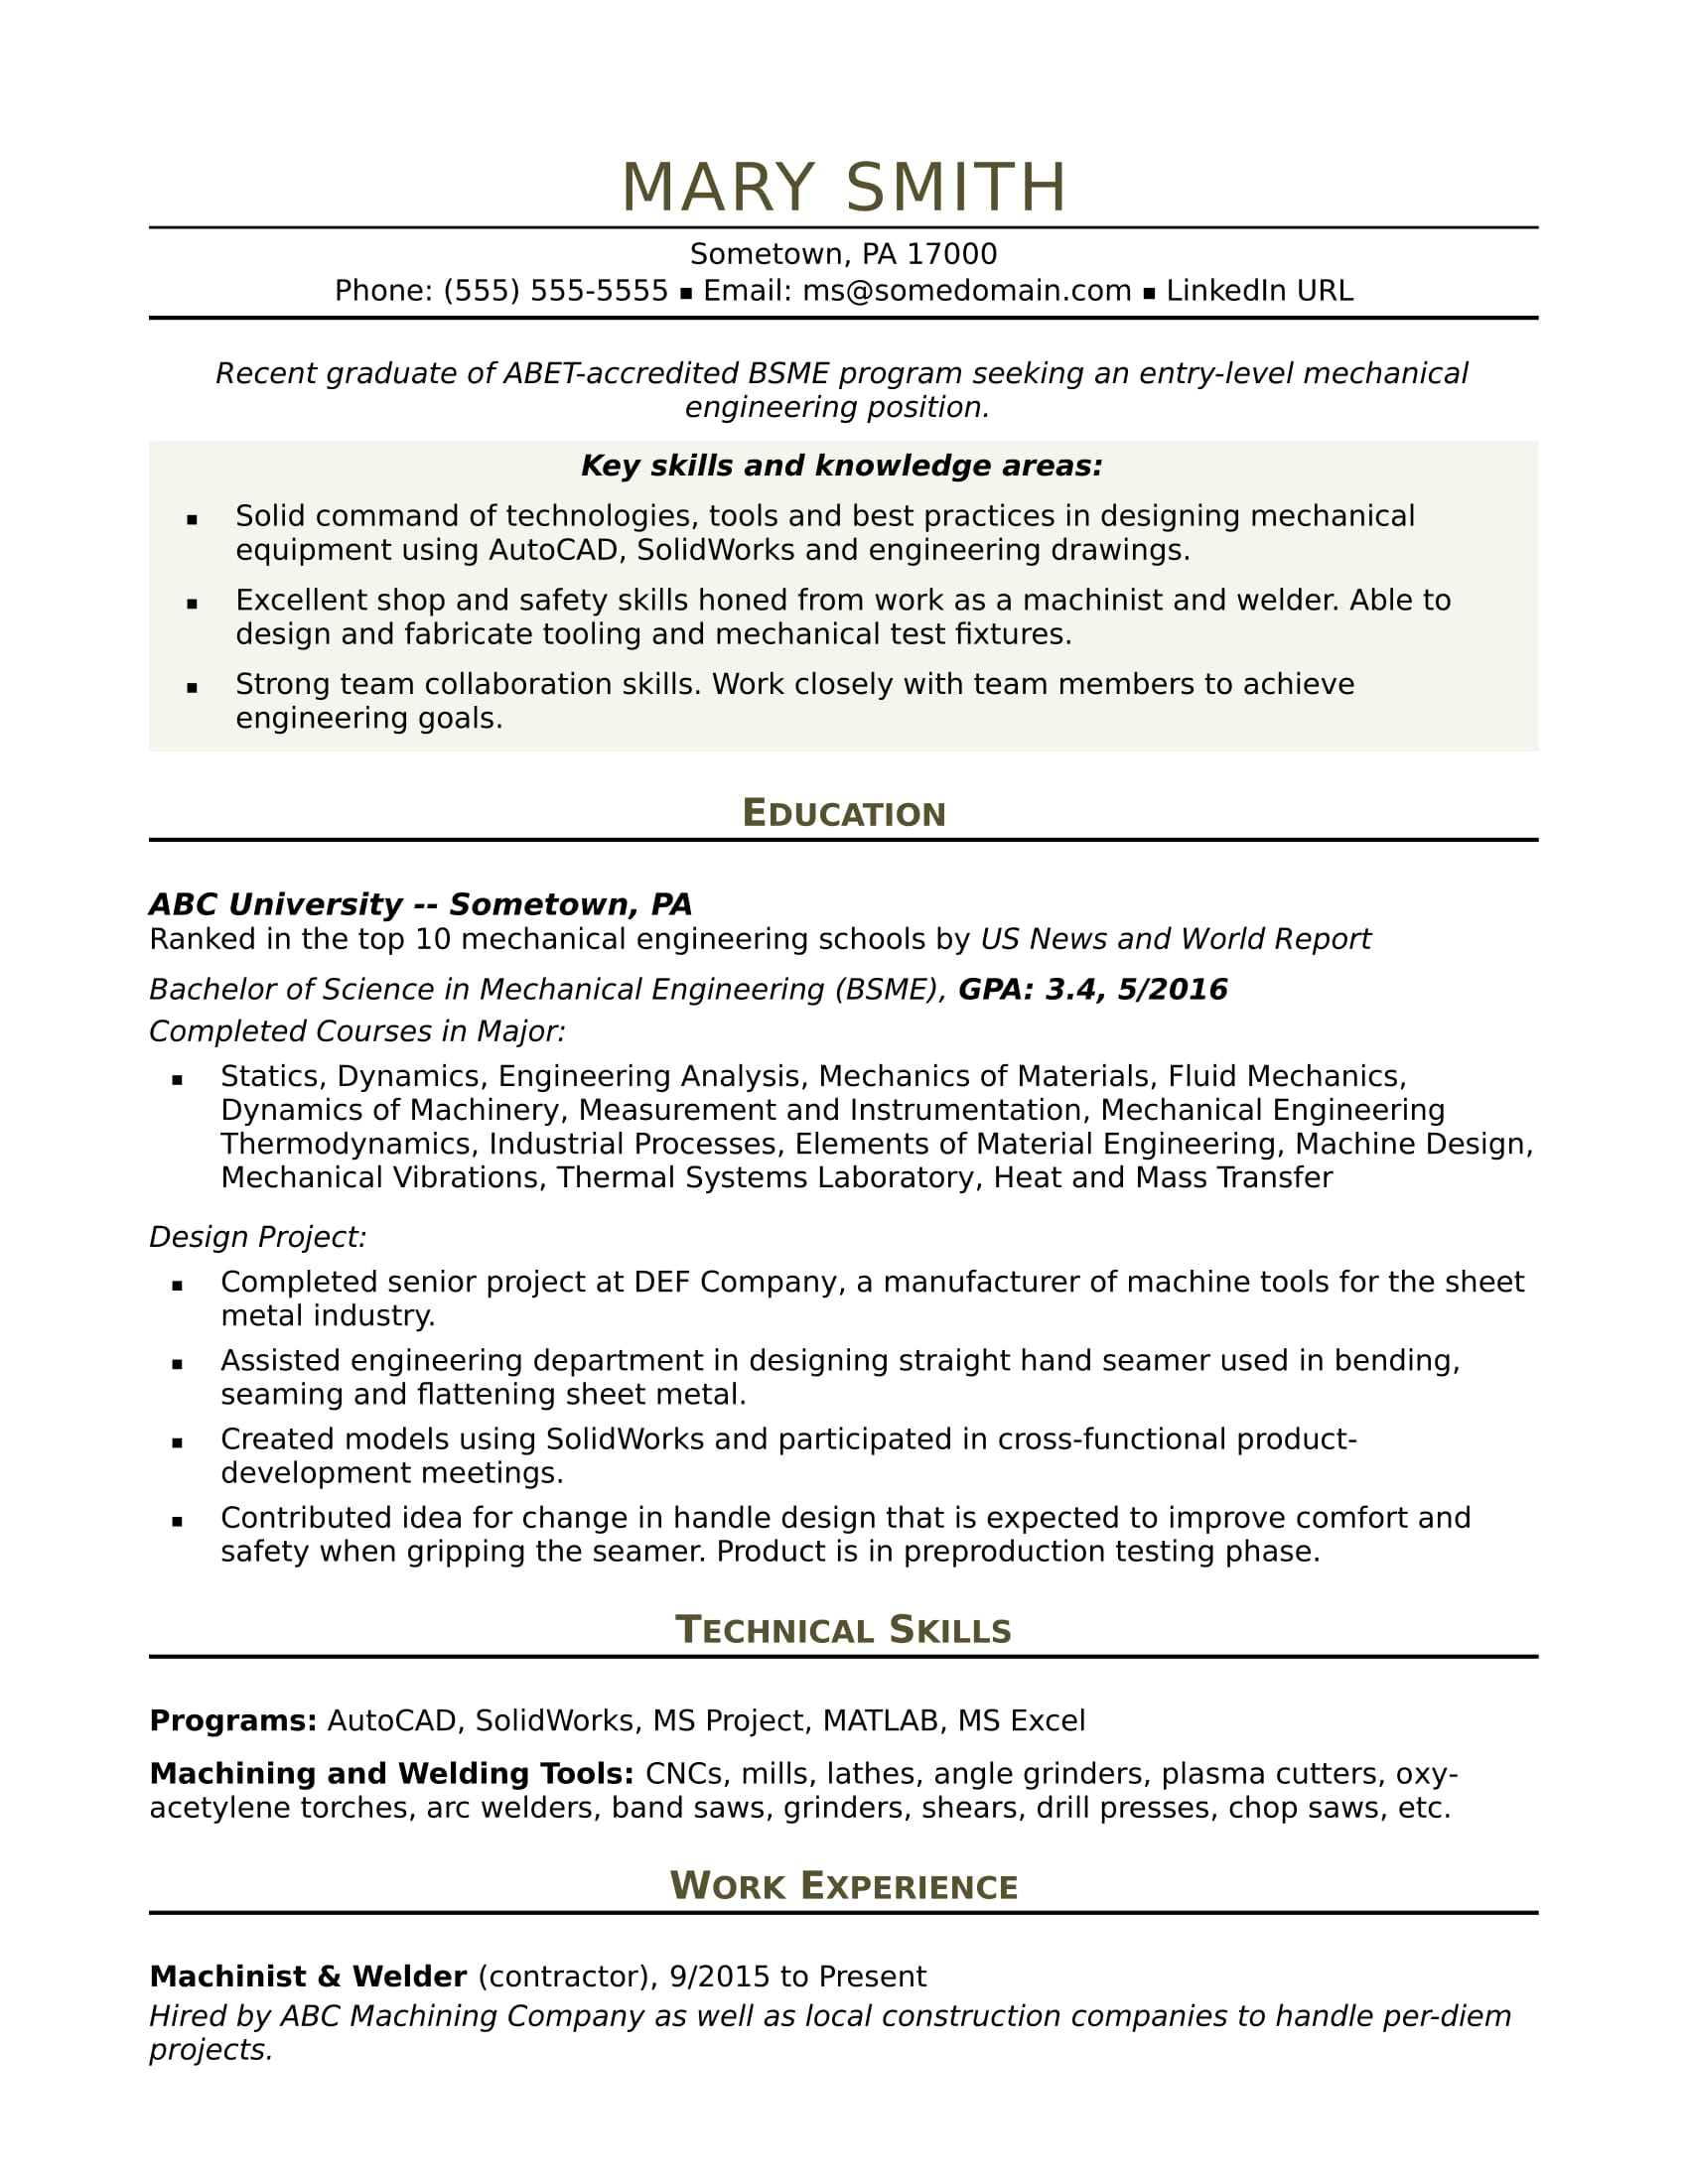 Sample Key Skills For Resume Sample Resume For An Entry Level Mechanical Engineer Monster